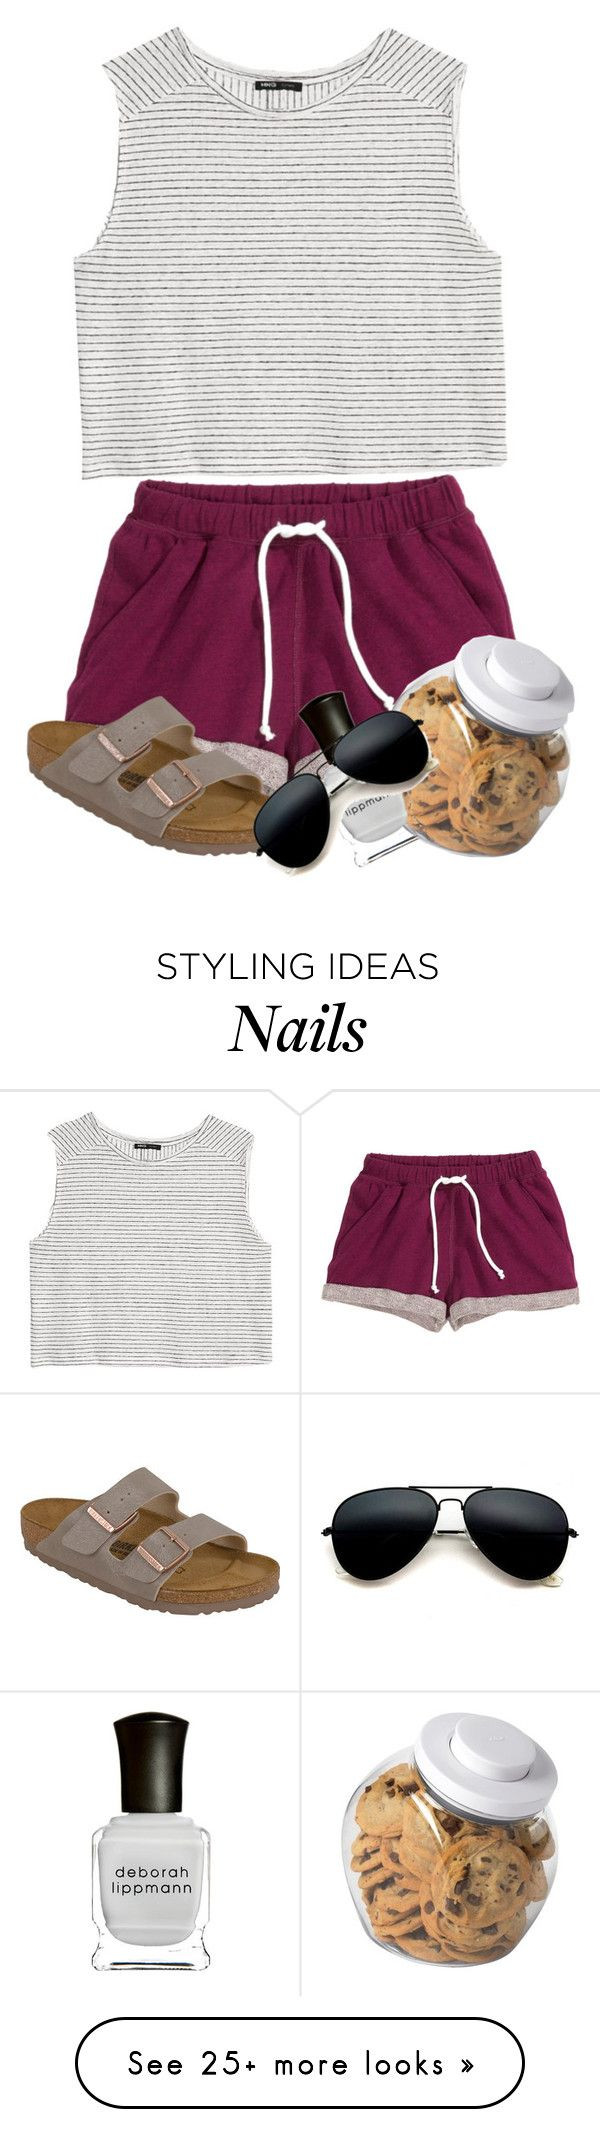 """Comf"" by heyymaisey on Polyvore featuring H&M, MANGO, Birkenstock, OXO and Deborah Lippmann"